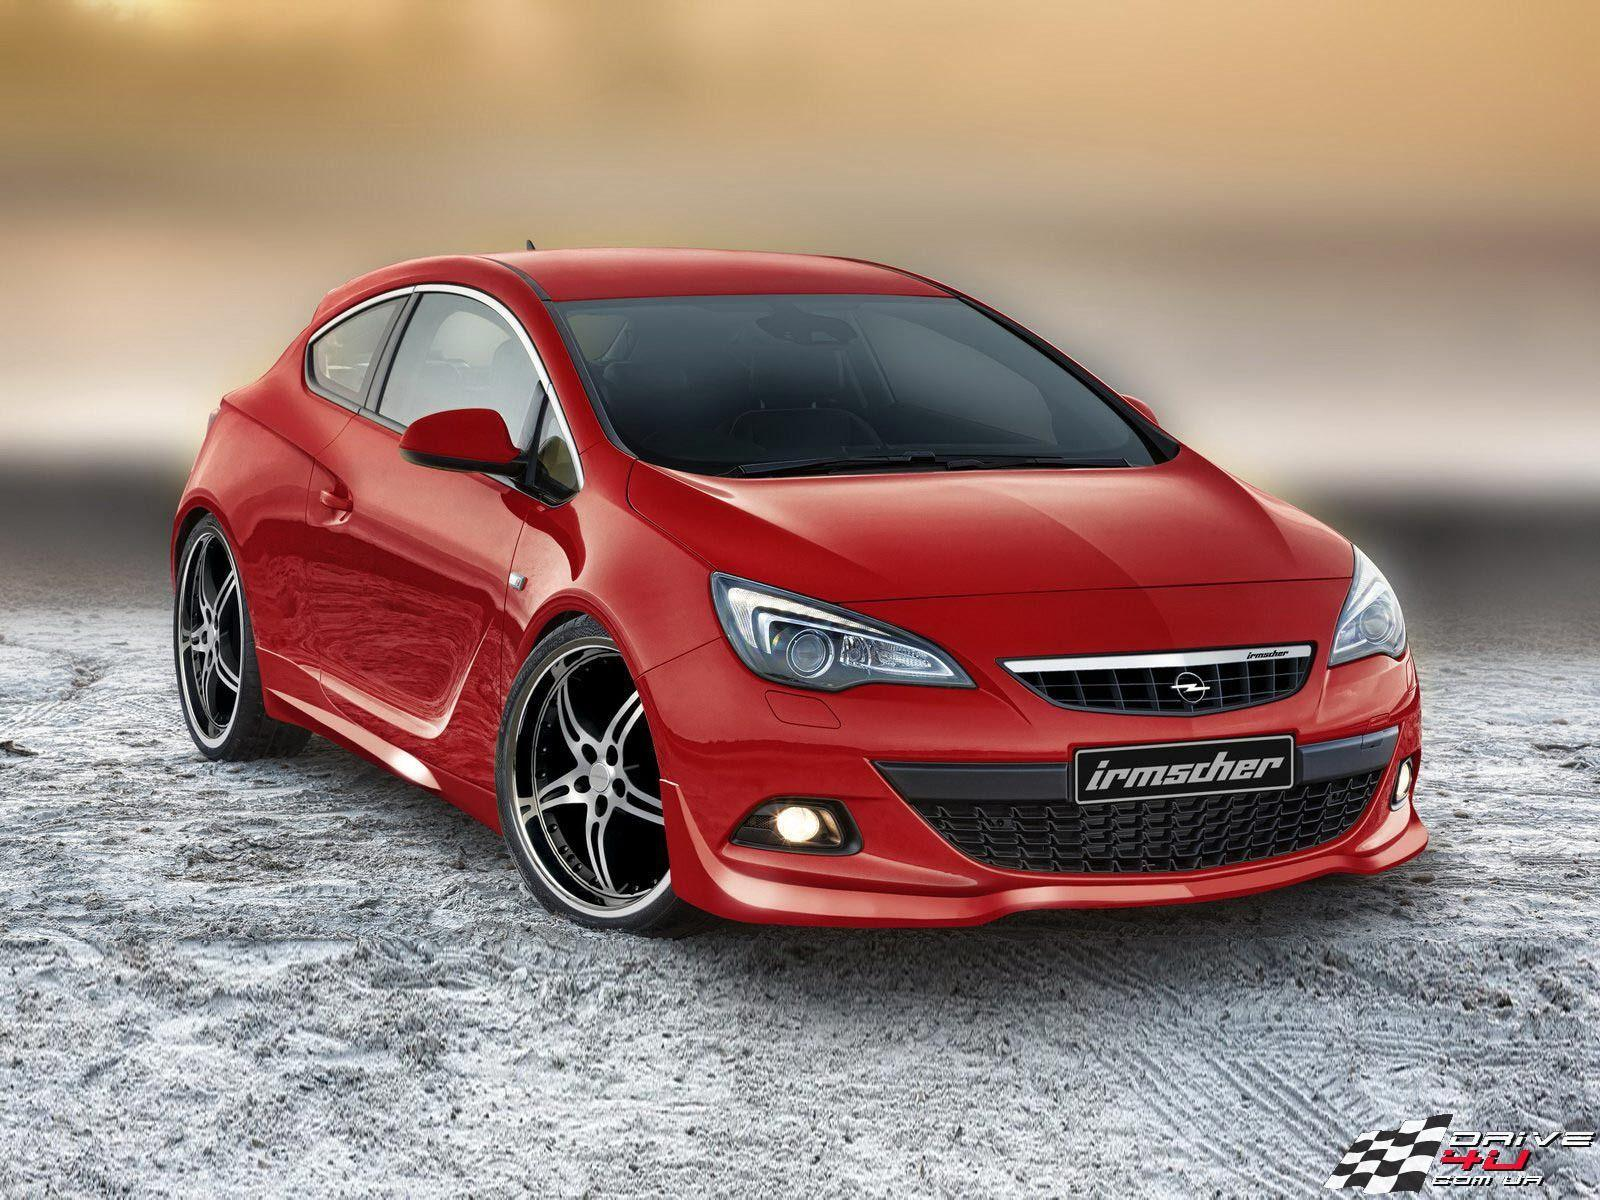 New car Opel Astra GTC 2014 wallpapers and image